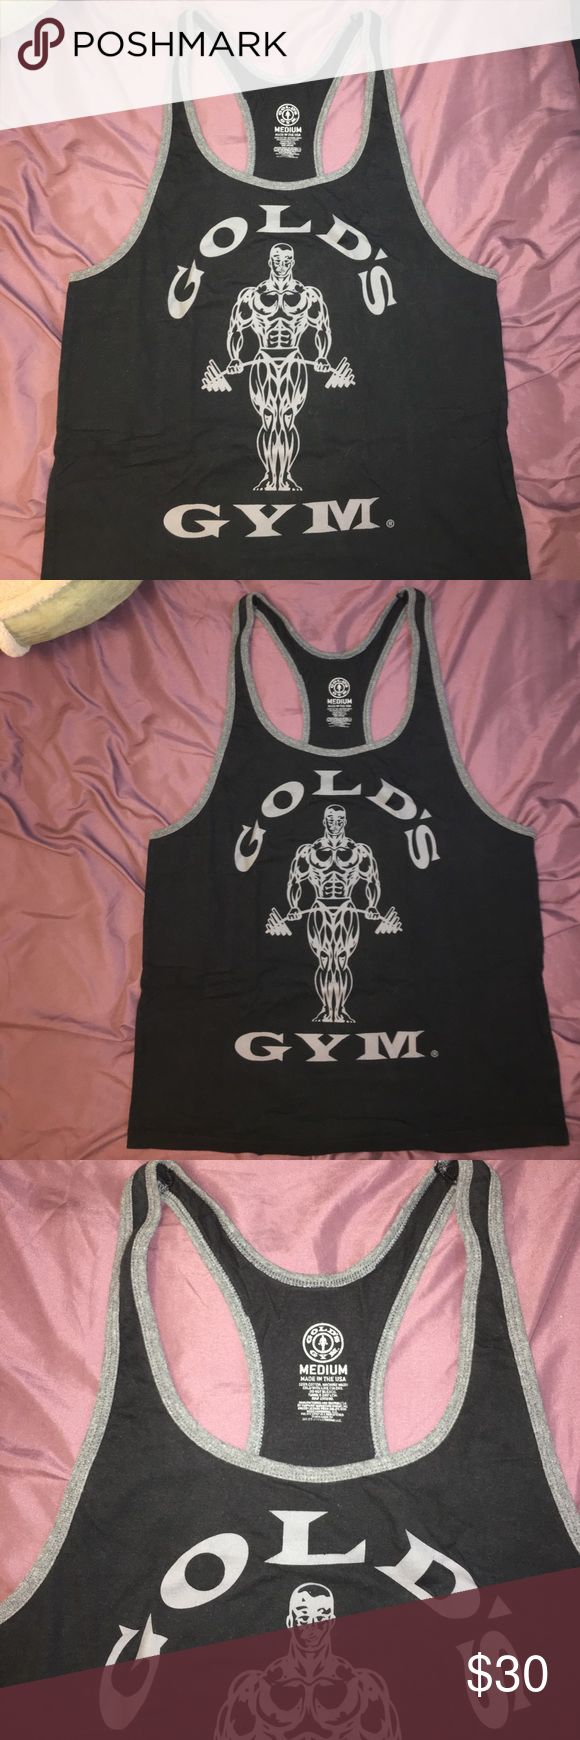 Golds Gym Jet Black Y Stringer Pre owned. Great condition. 9.5 out of 10. COLOR: Jet Black. Dark look. This is true to the size Medium. Thanks for looking, have a good day! Golds Gym Shirts Tank Tops